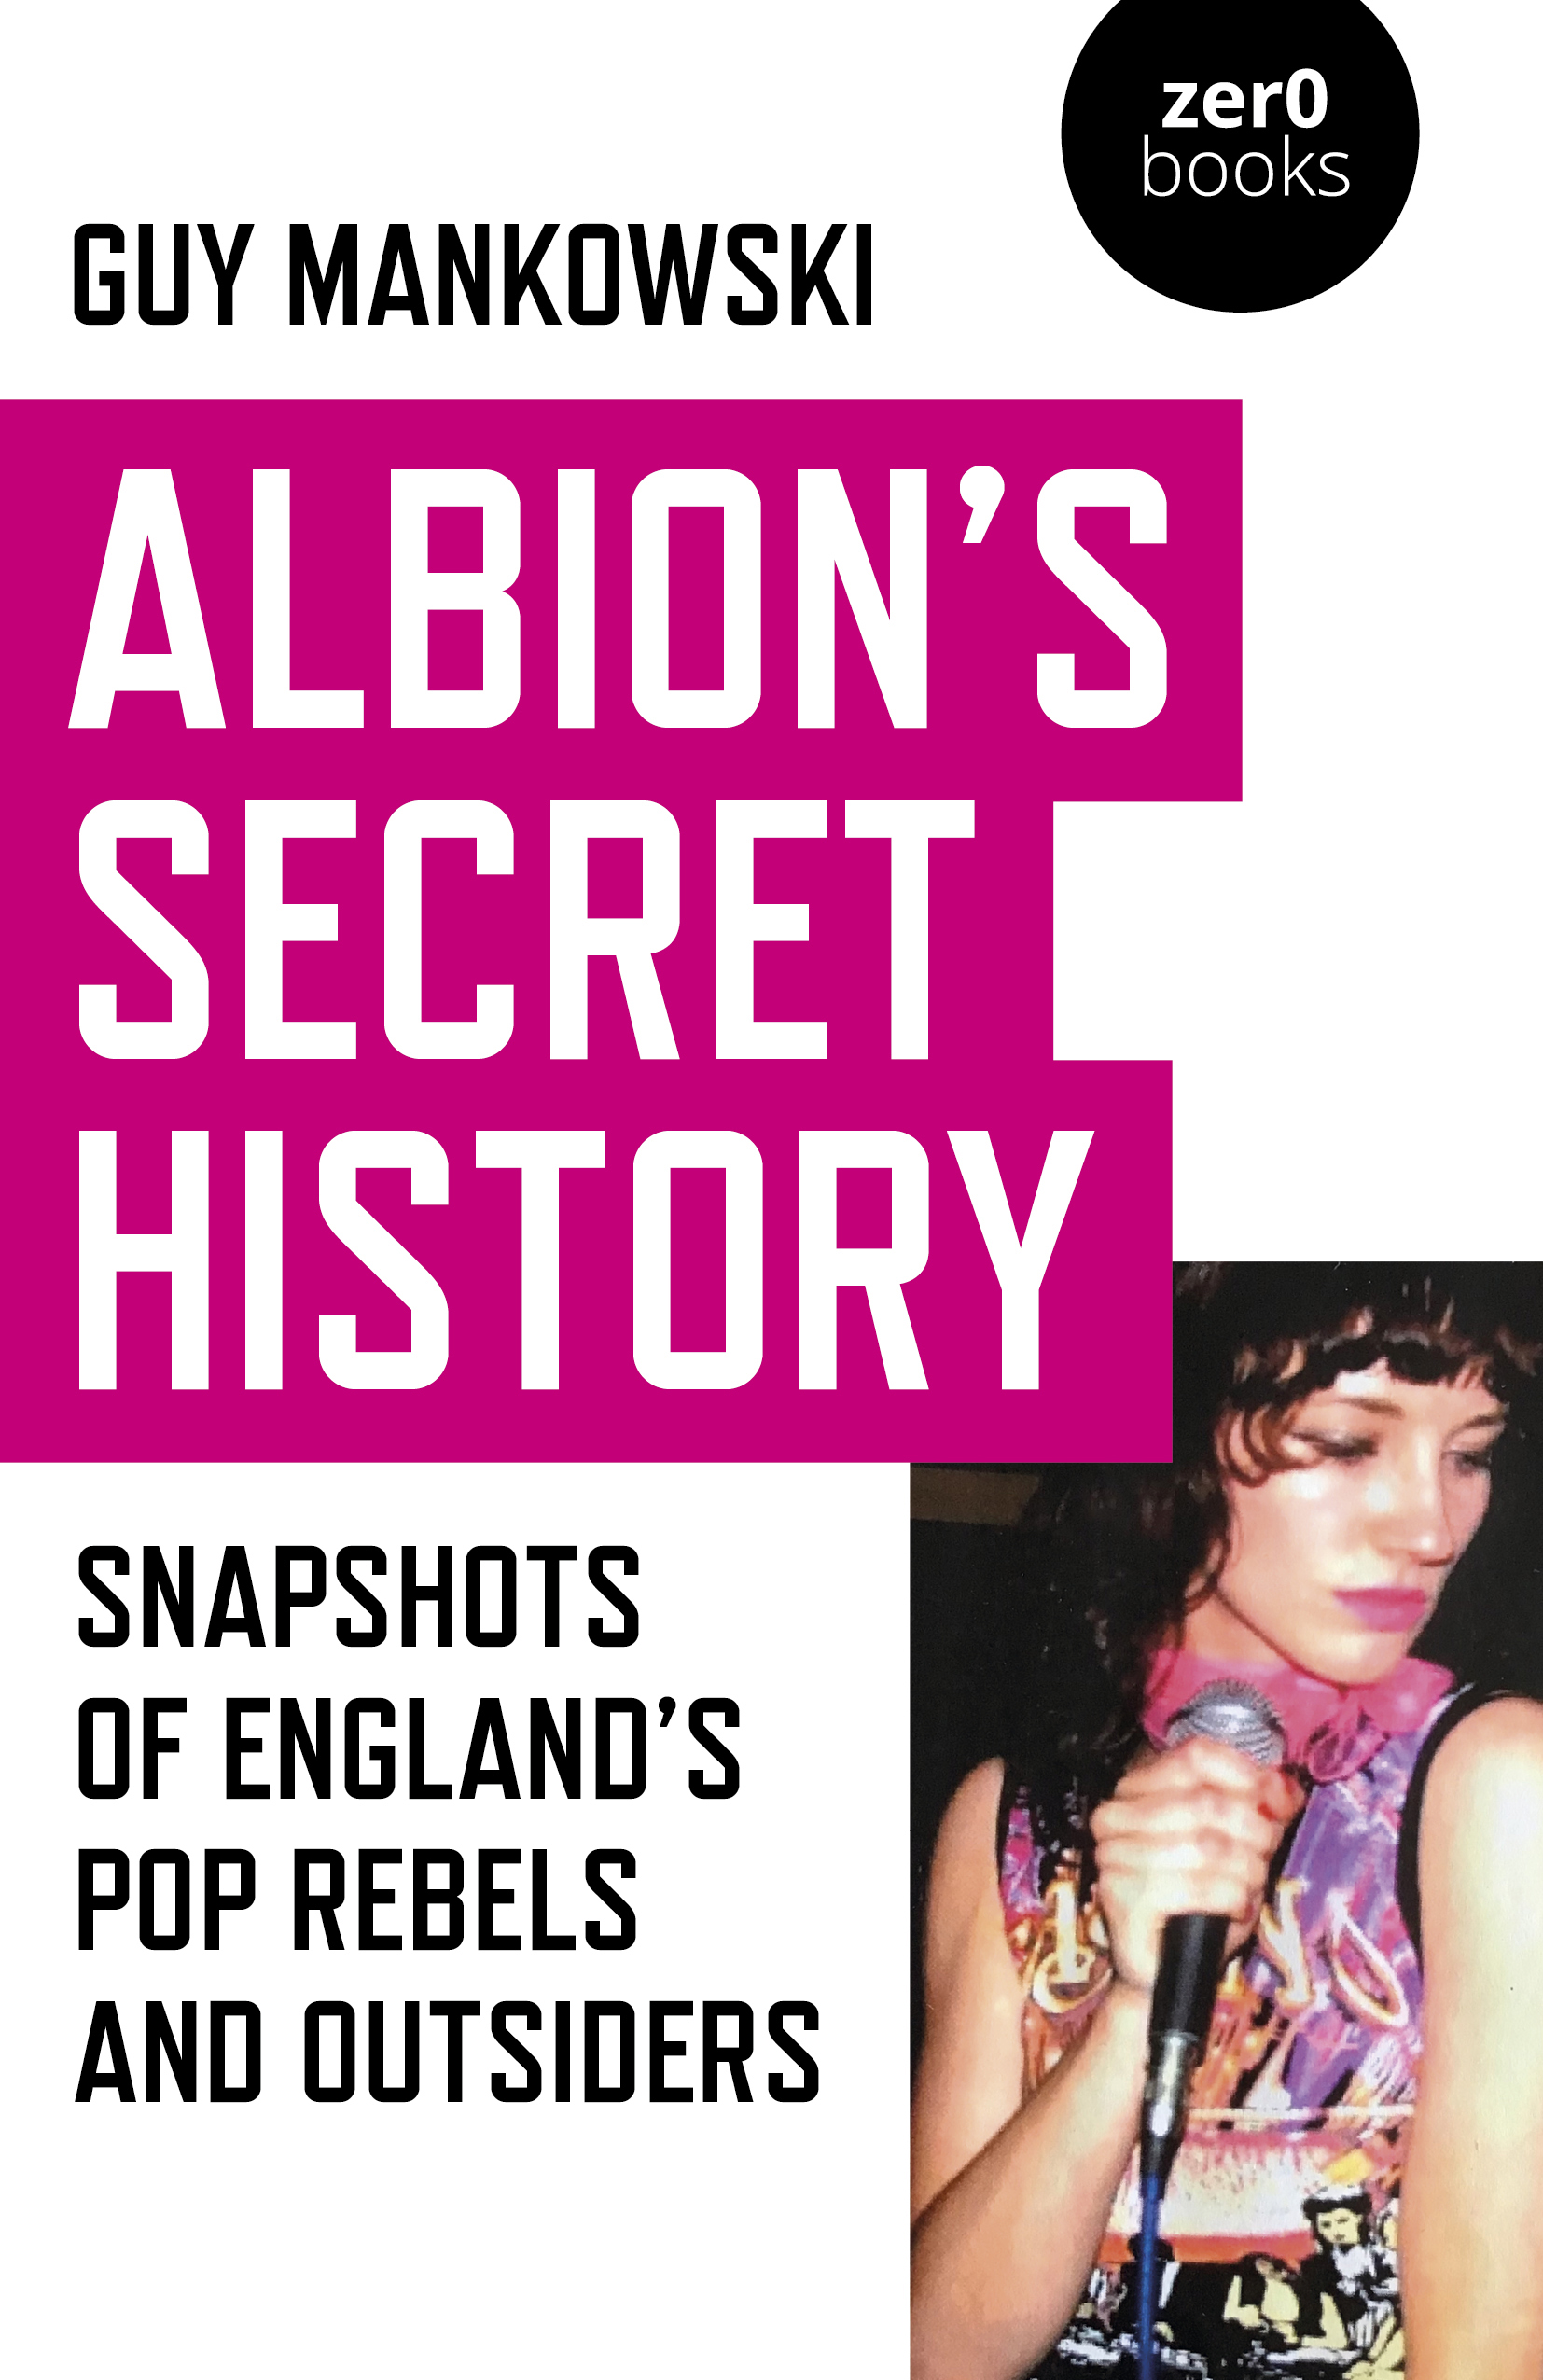 Albion's Secret History - Guy Mankowski